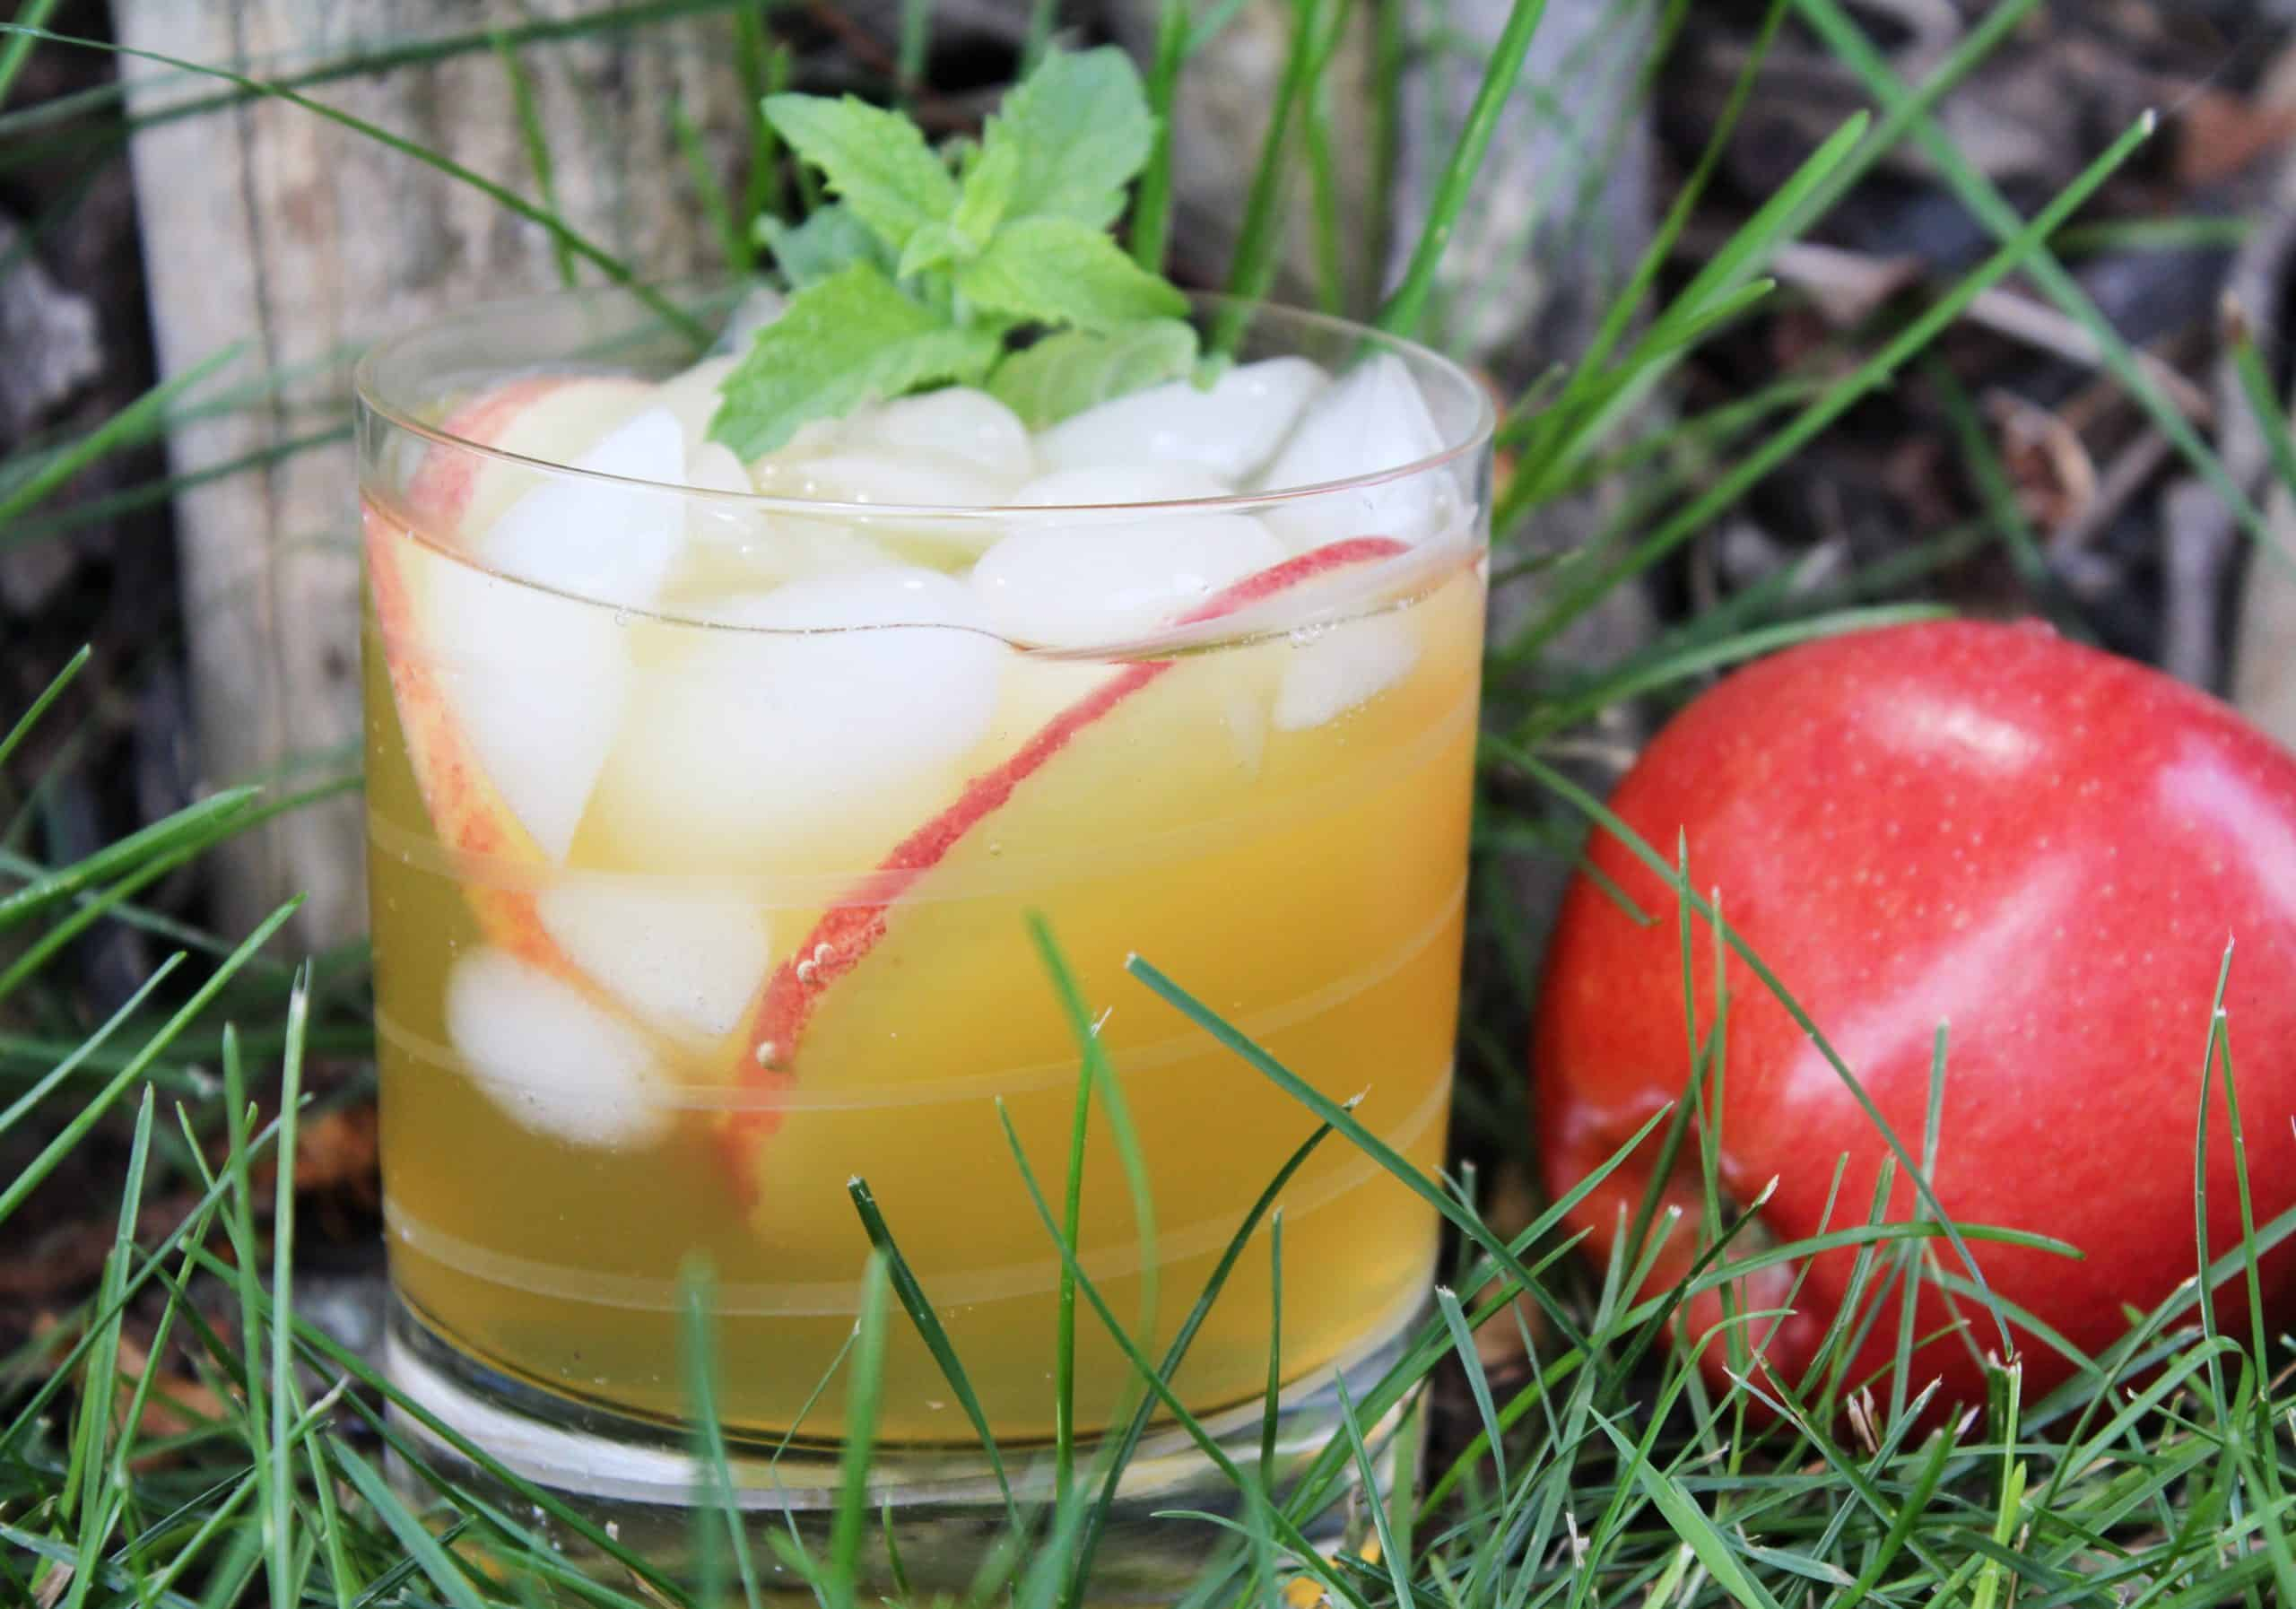 Apple cider mojito in a glass with an apple on the side.